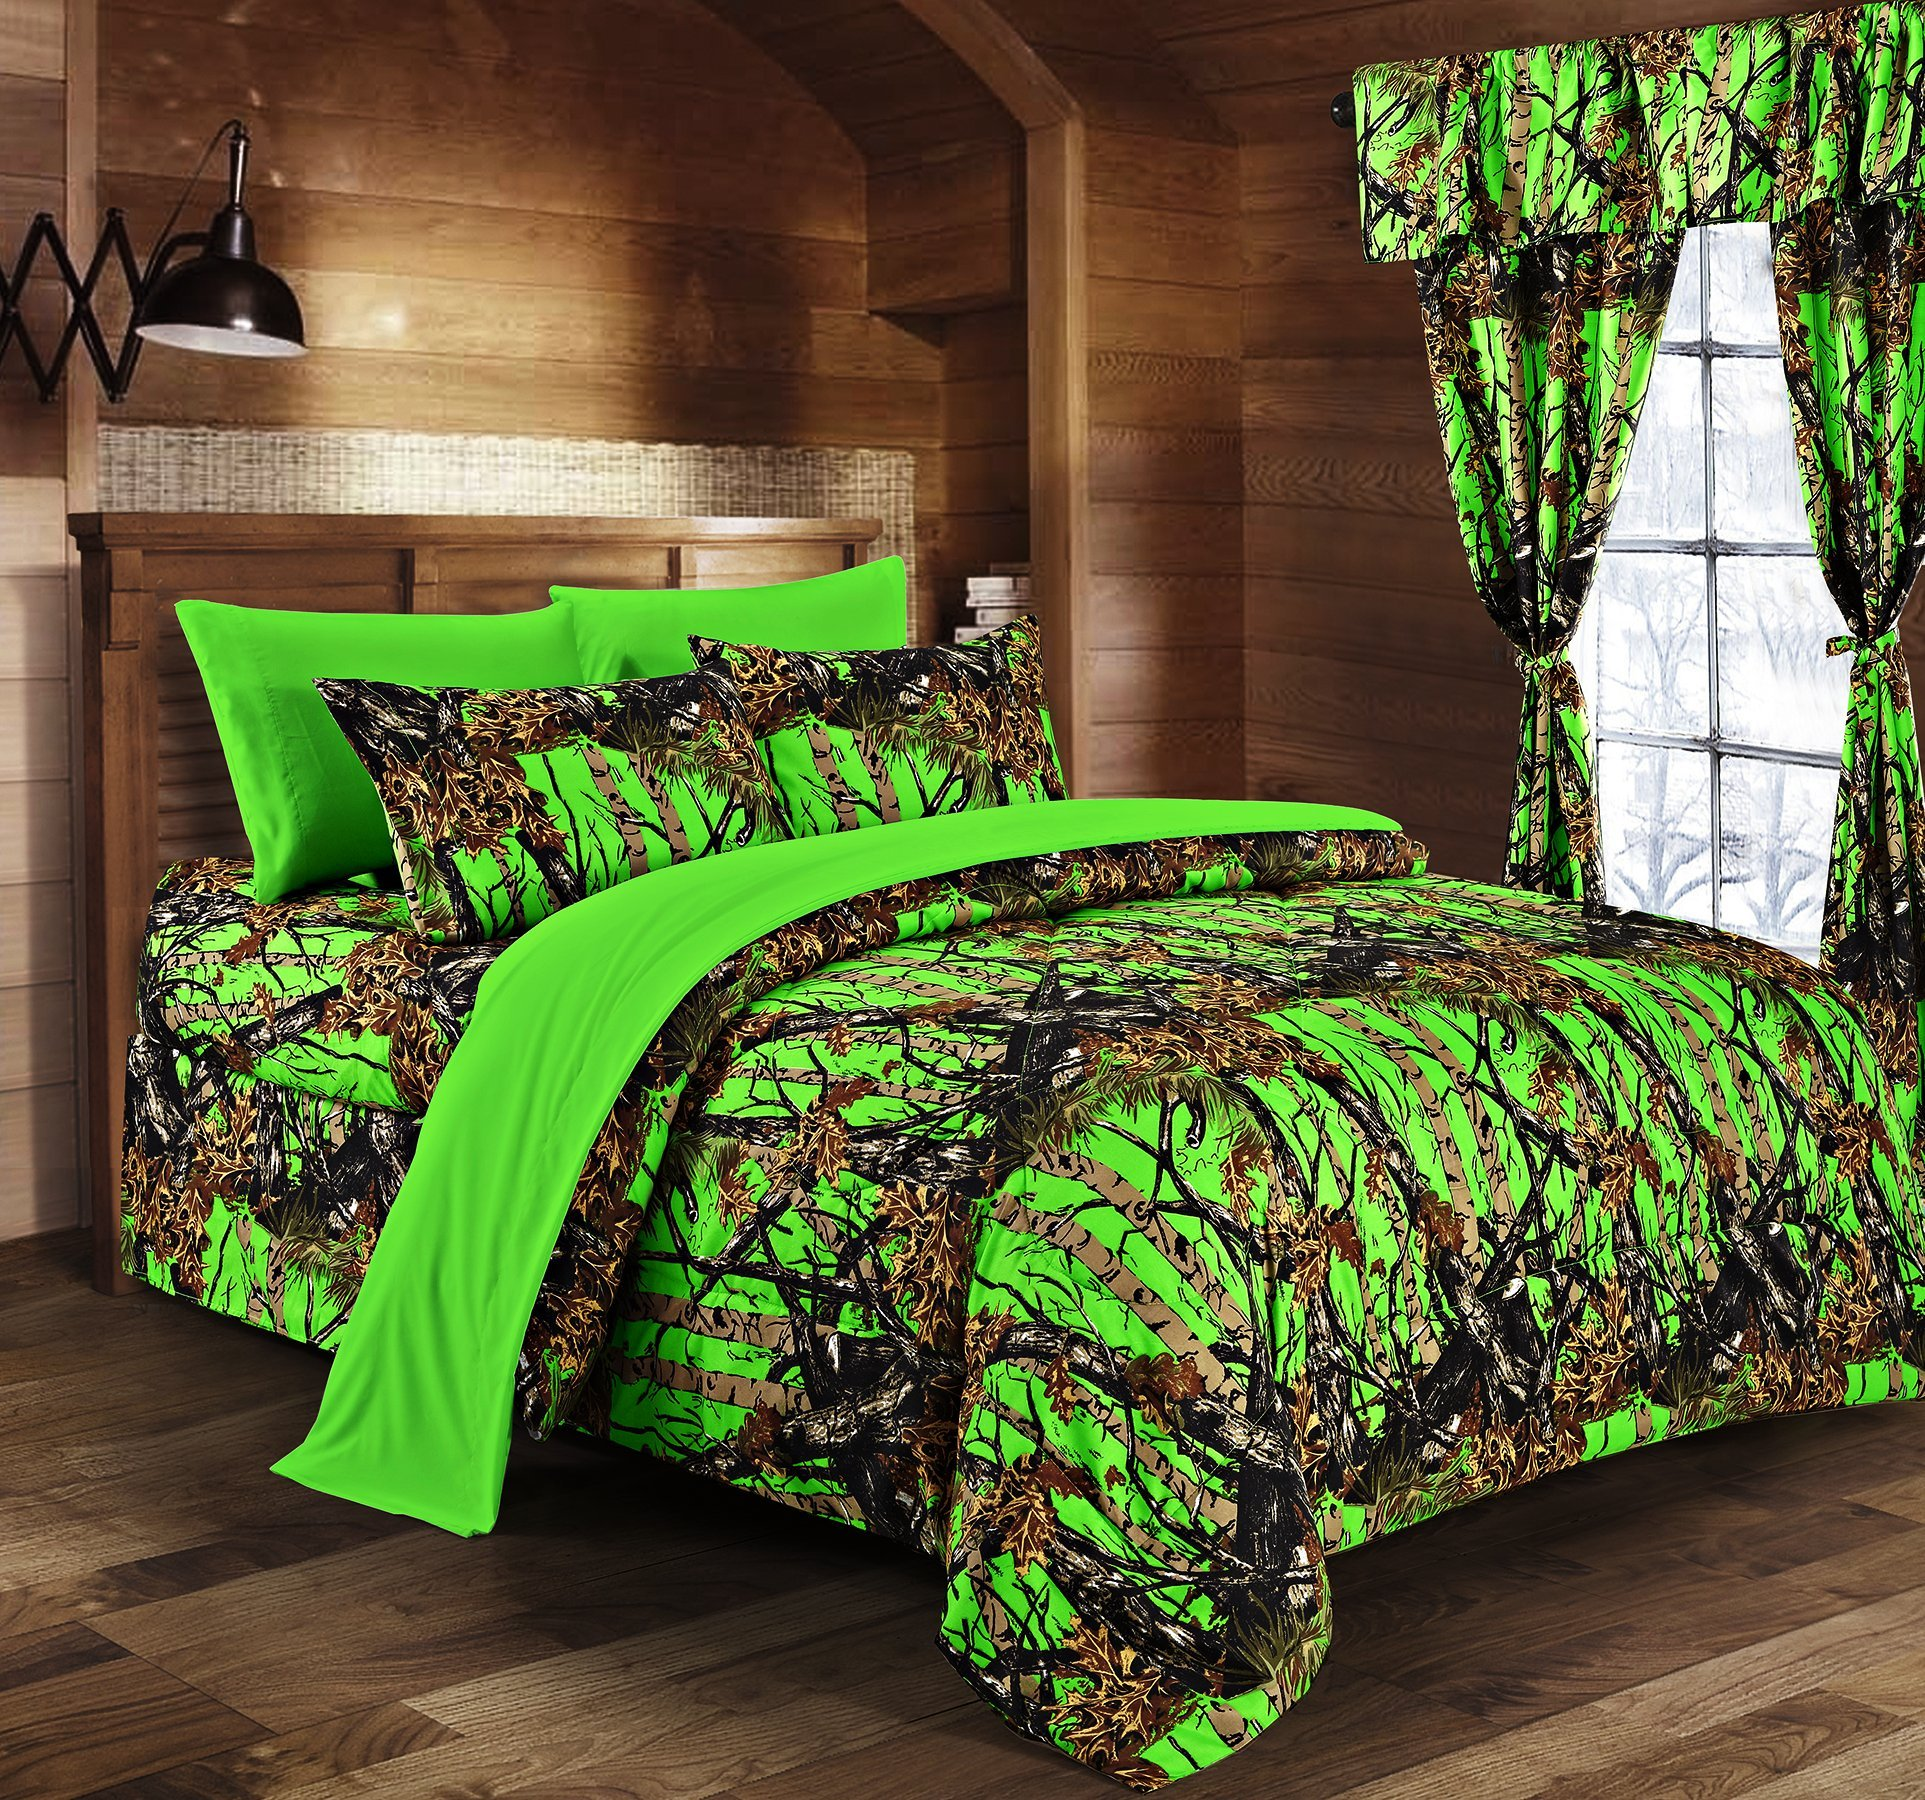 Regal Comfort Biohazard Green Camouflage King 8pc Premium Luxury Comforter, Sheet, Pillowcases, and Bed Skirt Set Camo Bedding Set for Hunters Teens Boys and Girls